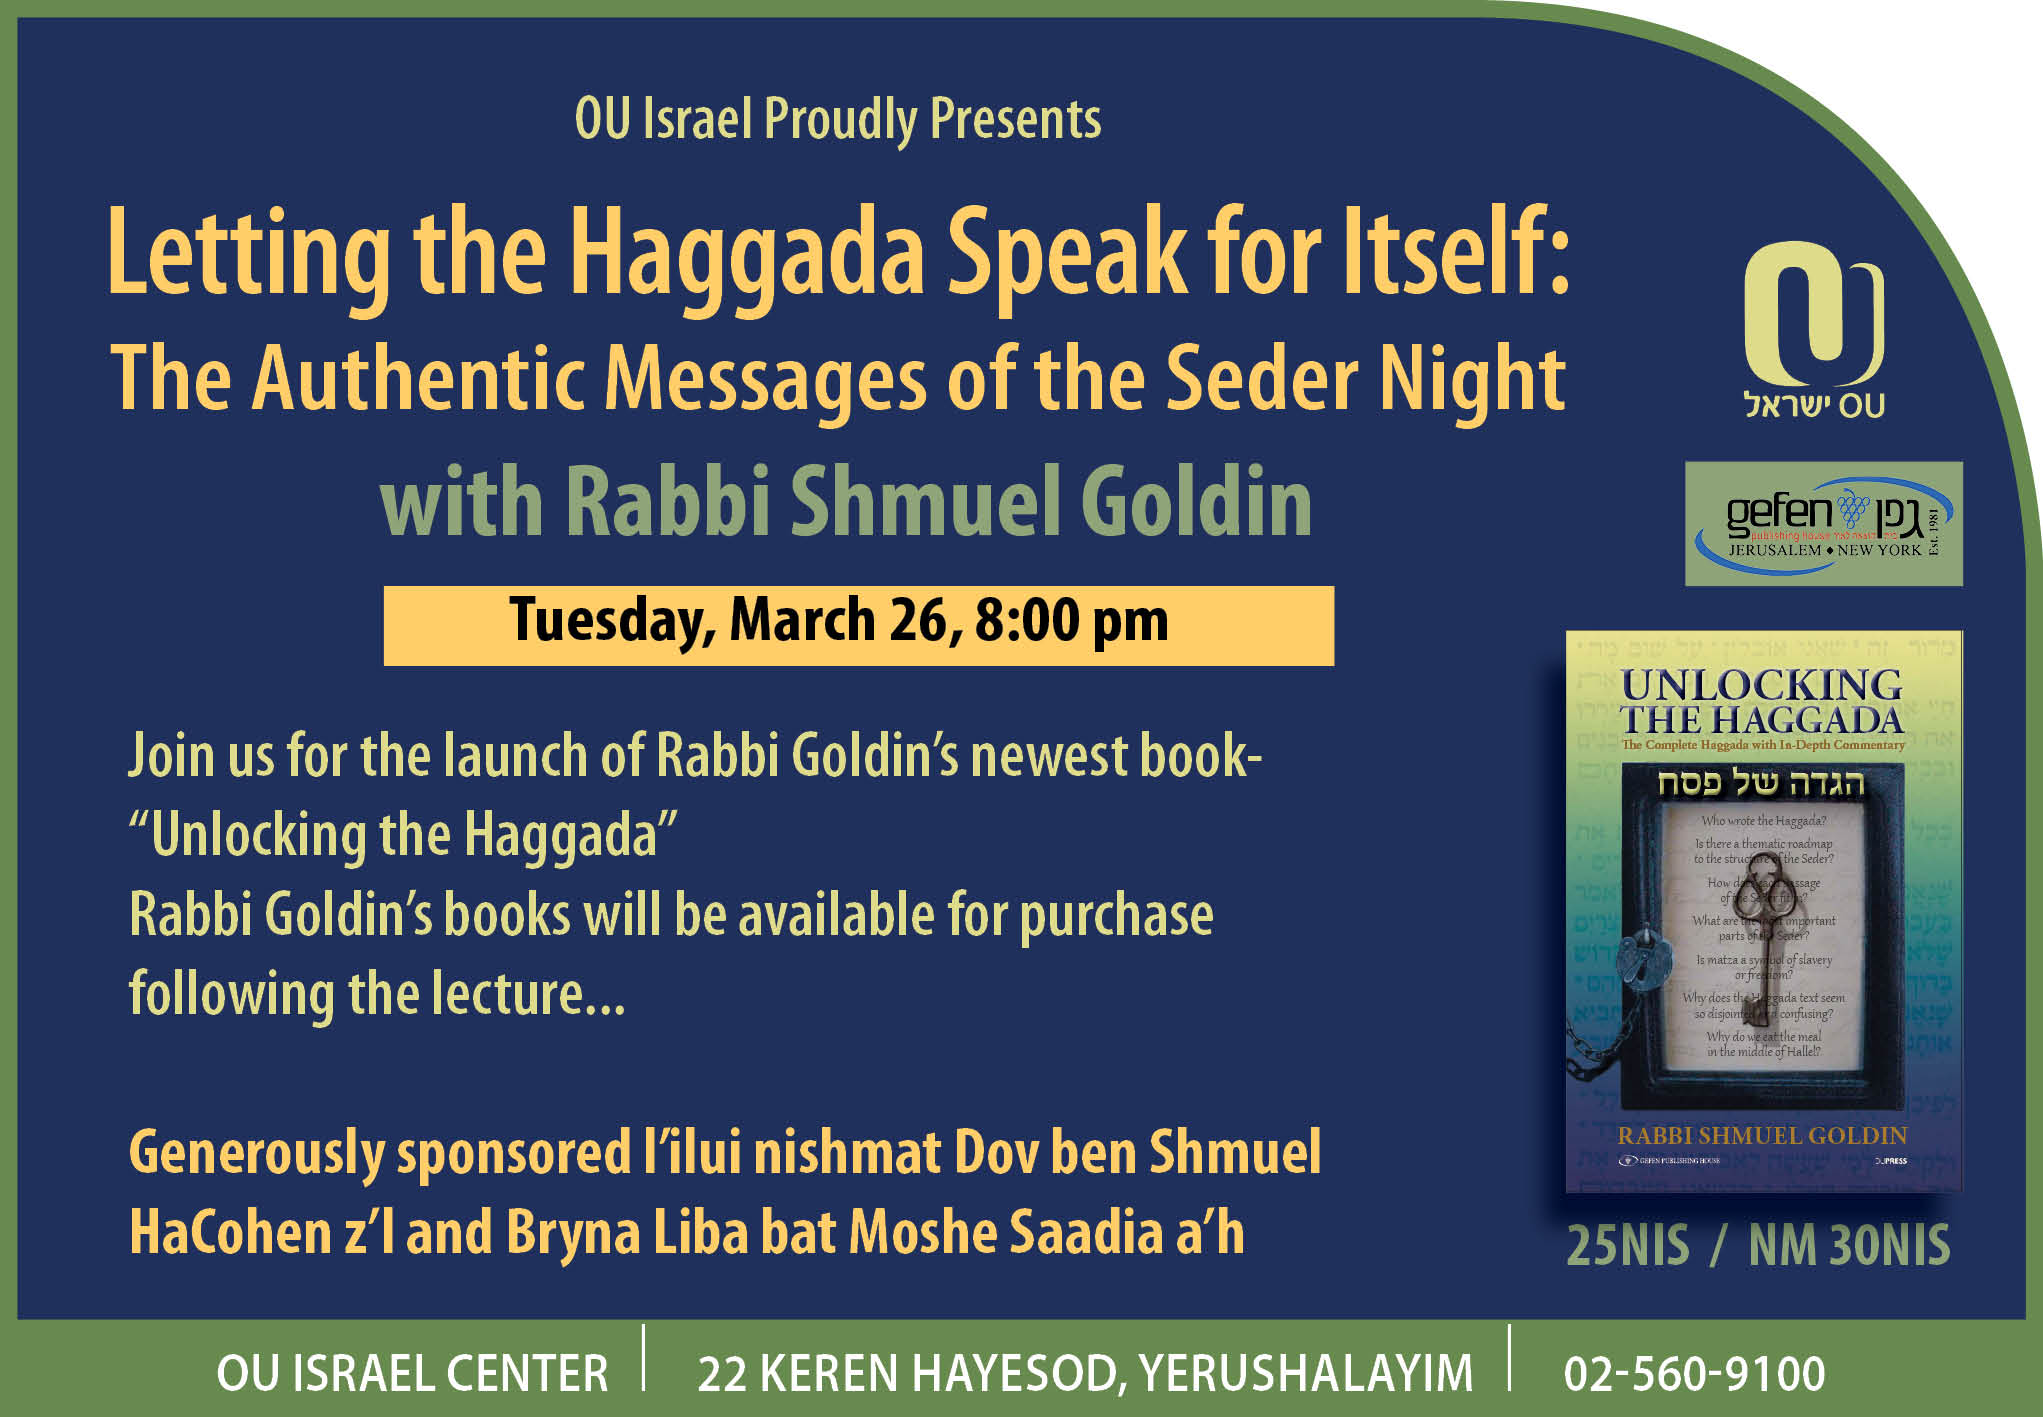 Letting the Haggada Speak for Itself: The Authentic Messages of the Seder Night